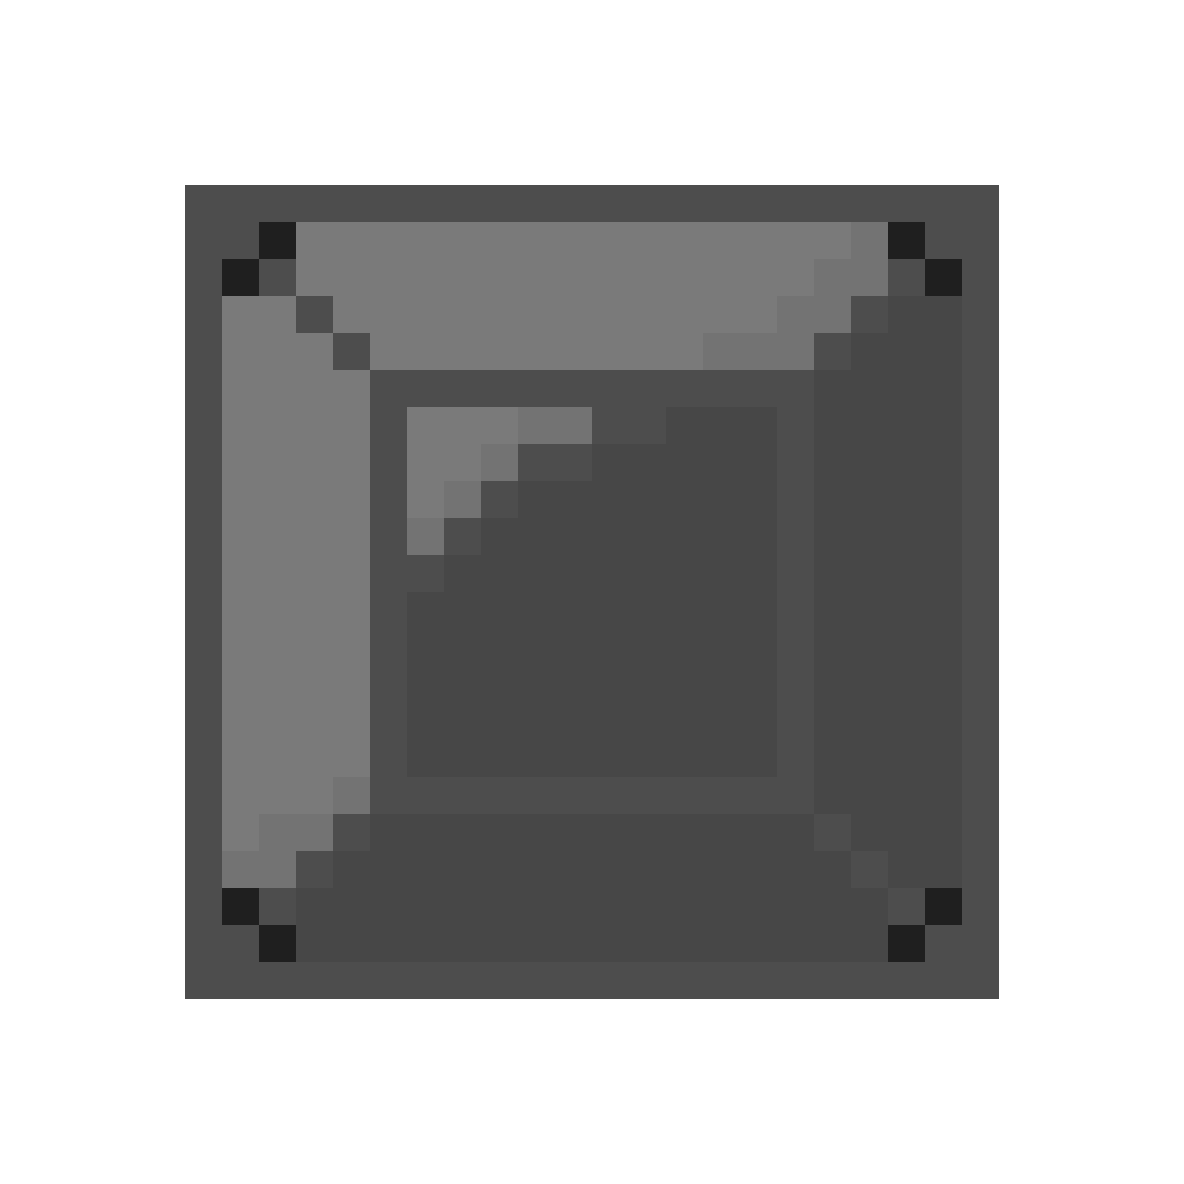 Metal crate png. Pixilart by ladlelord